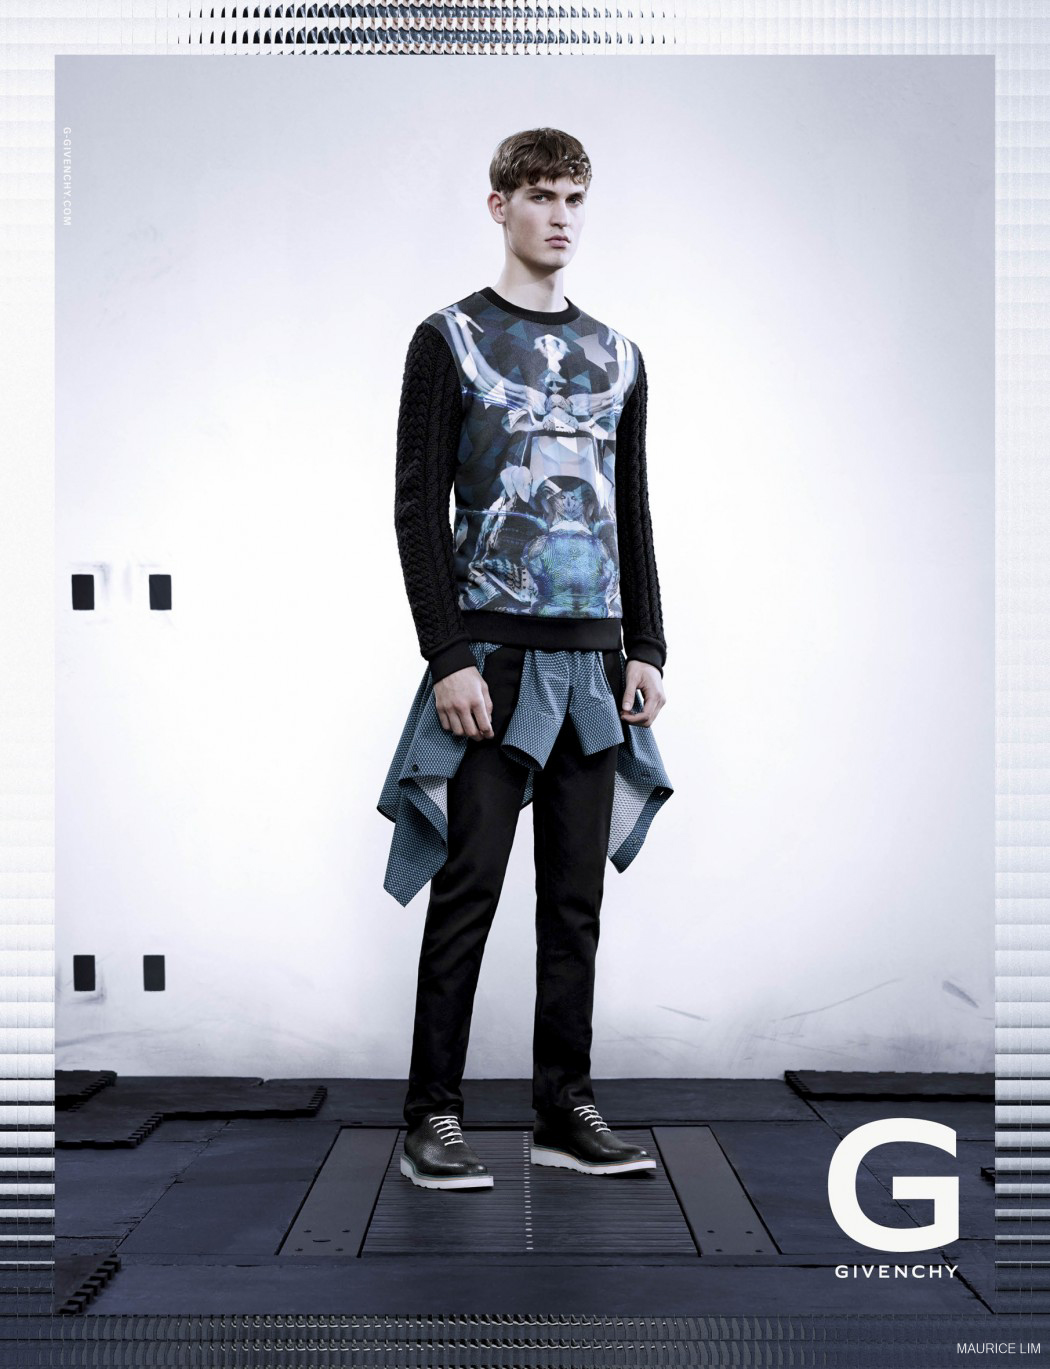 6f45ba9a8293 label G Givenchy – Search Results – Second Kulture